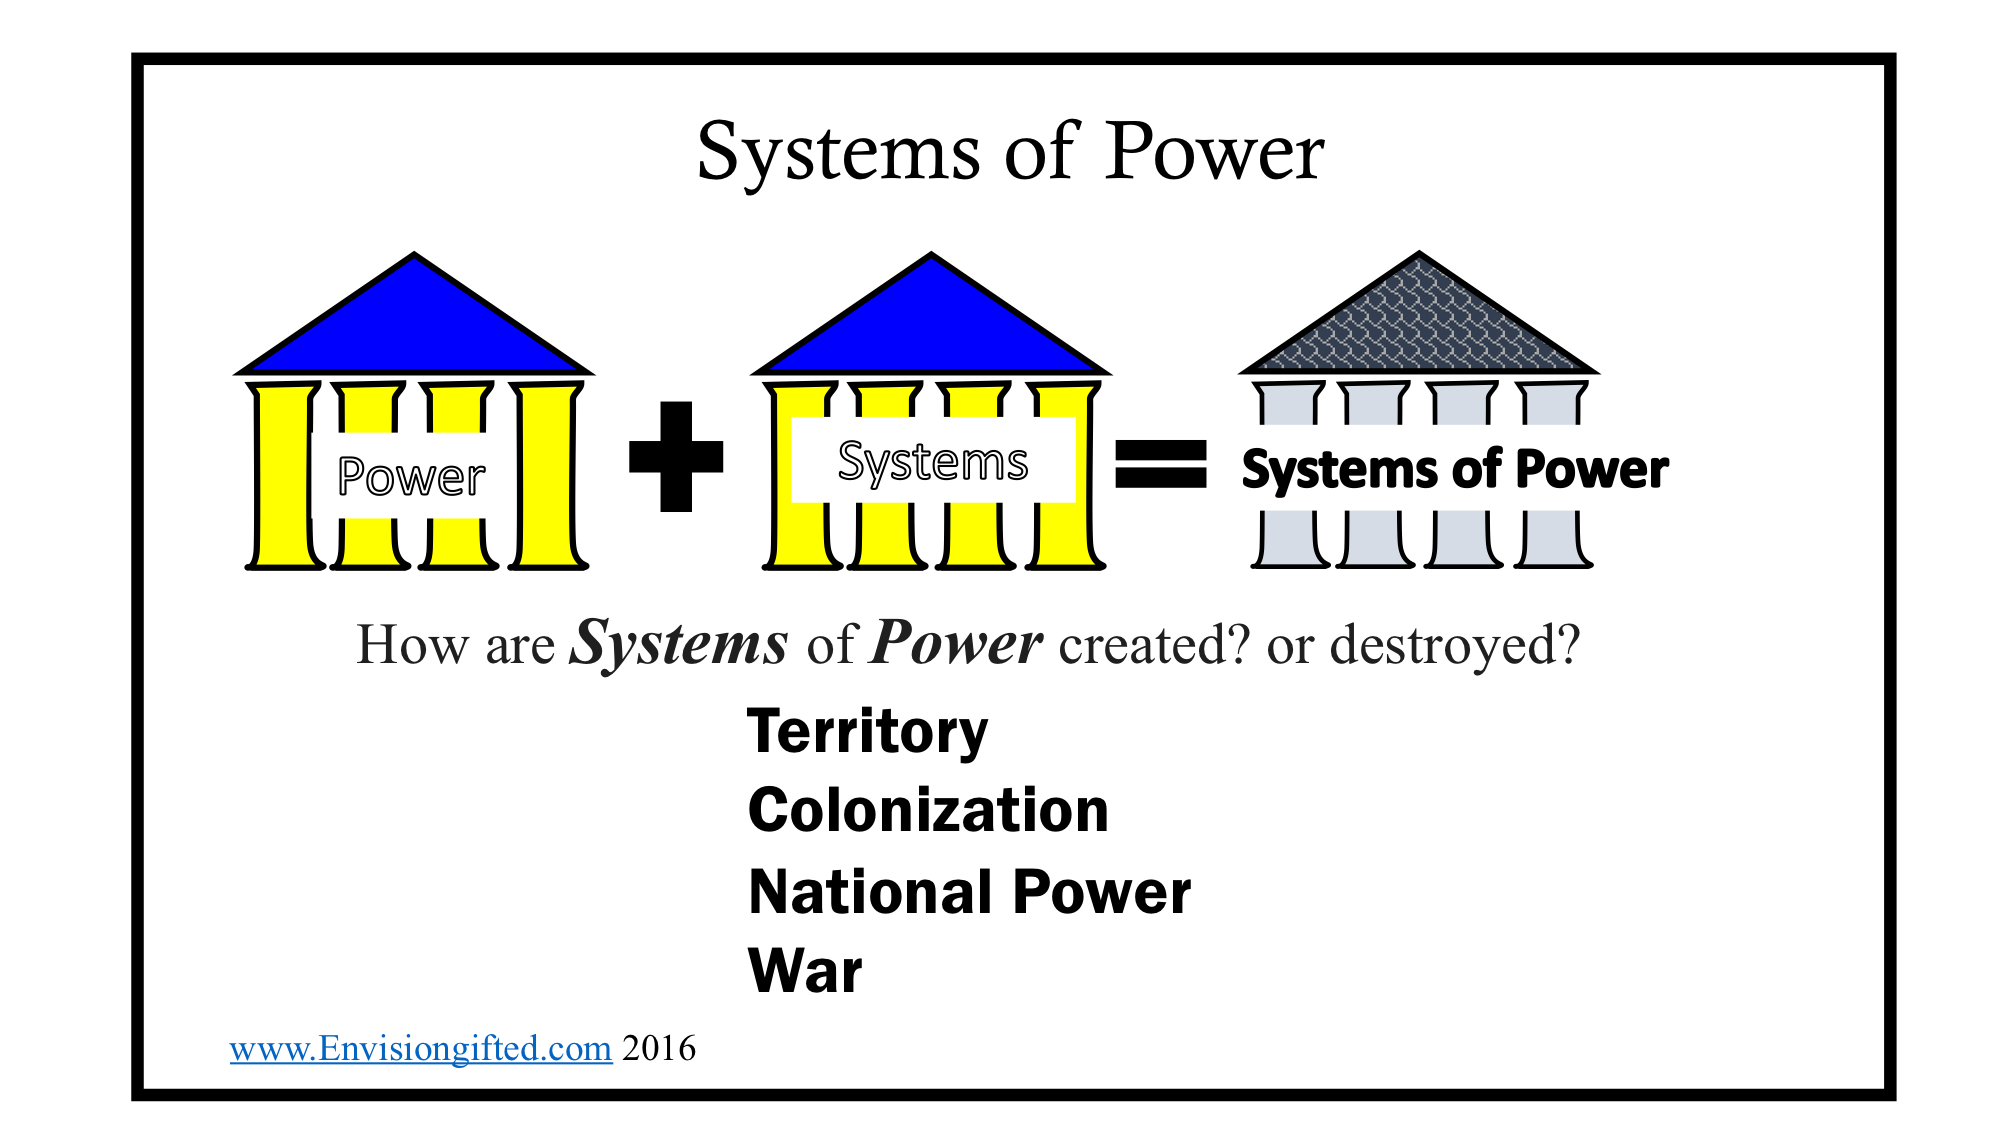 Universal Theme- Systems of Power